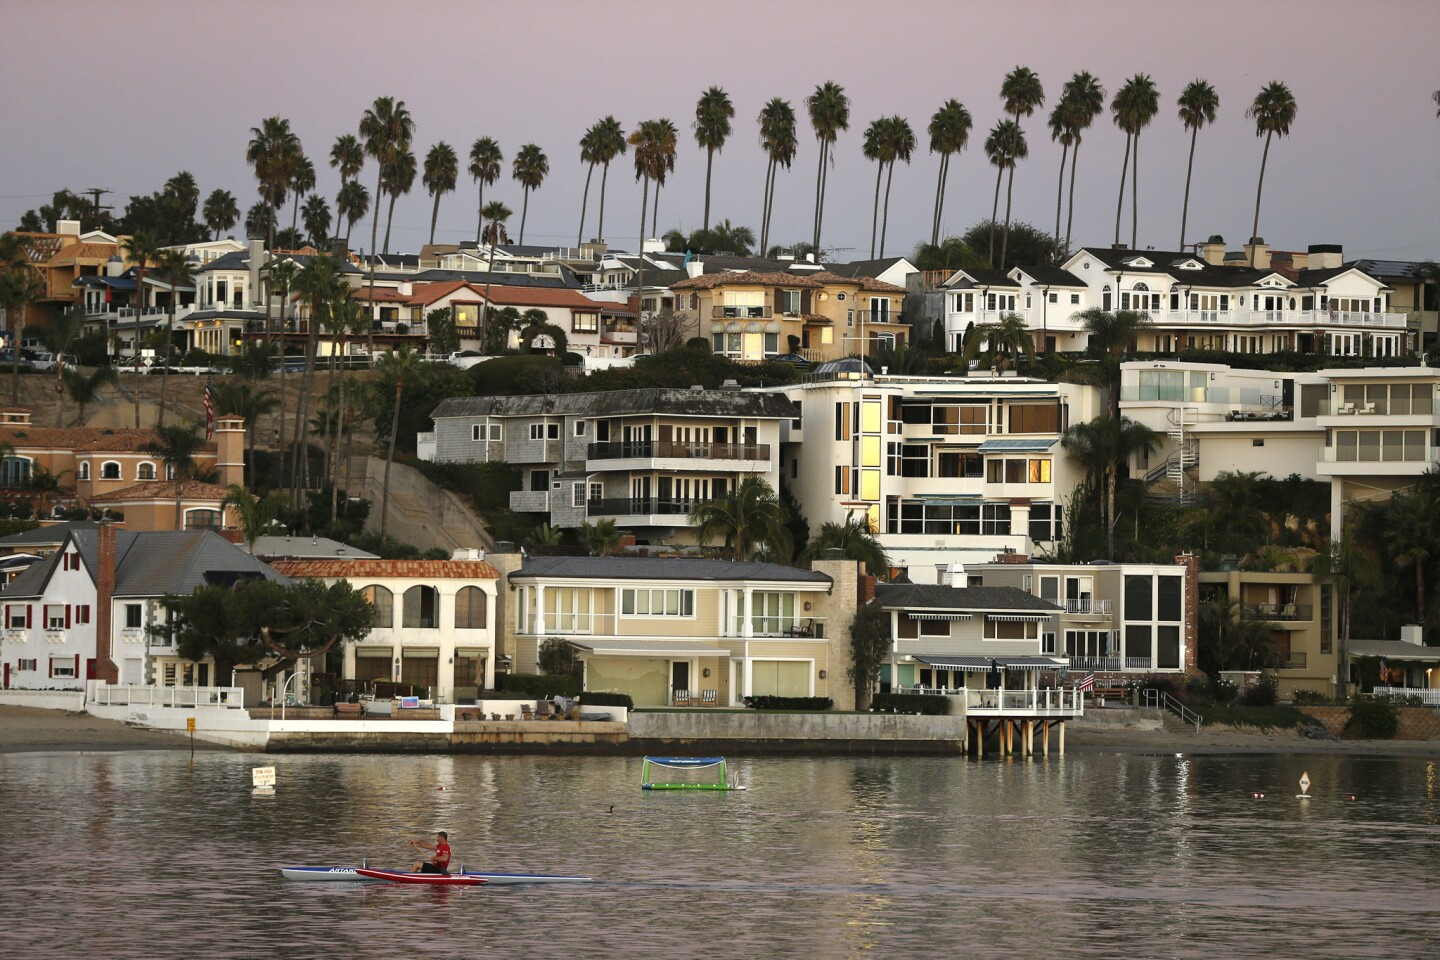 A kayaker cruises cruises through Newport Harbor on election day in Newport Beach.